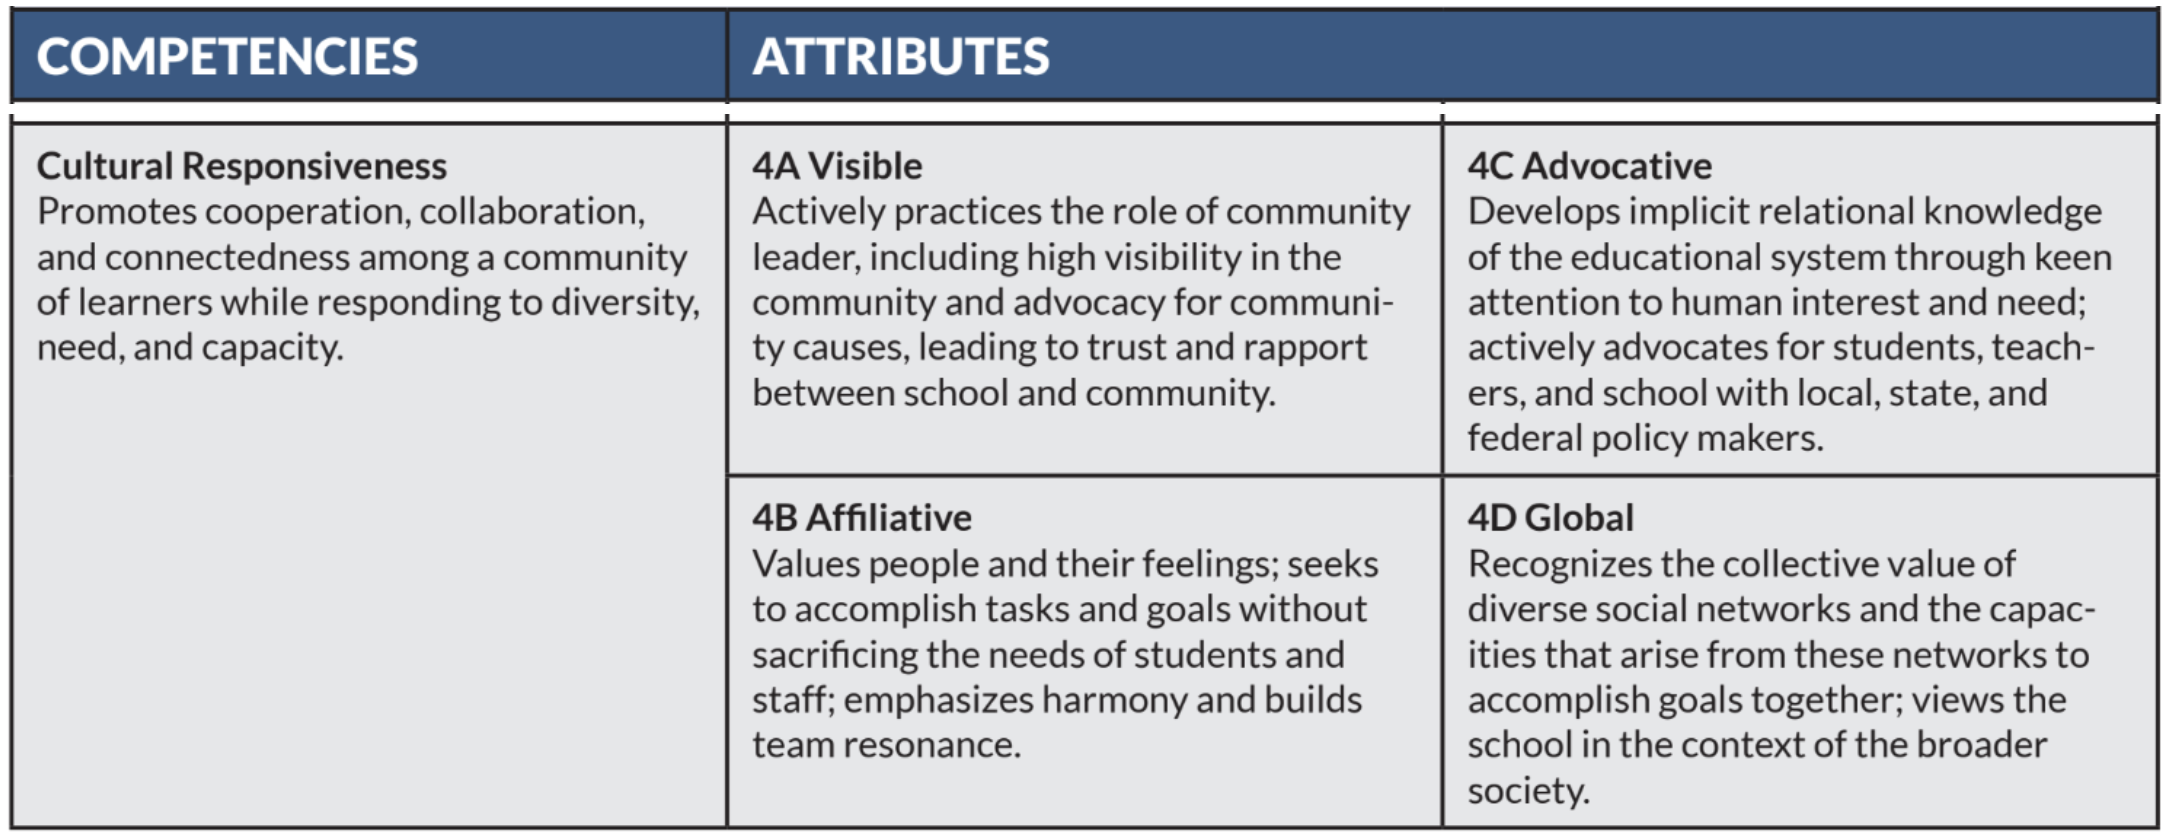 Competencies and Attributes